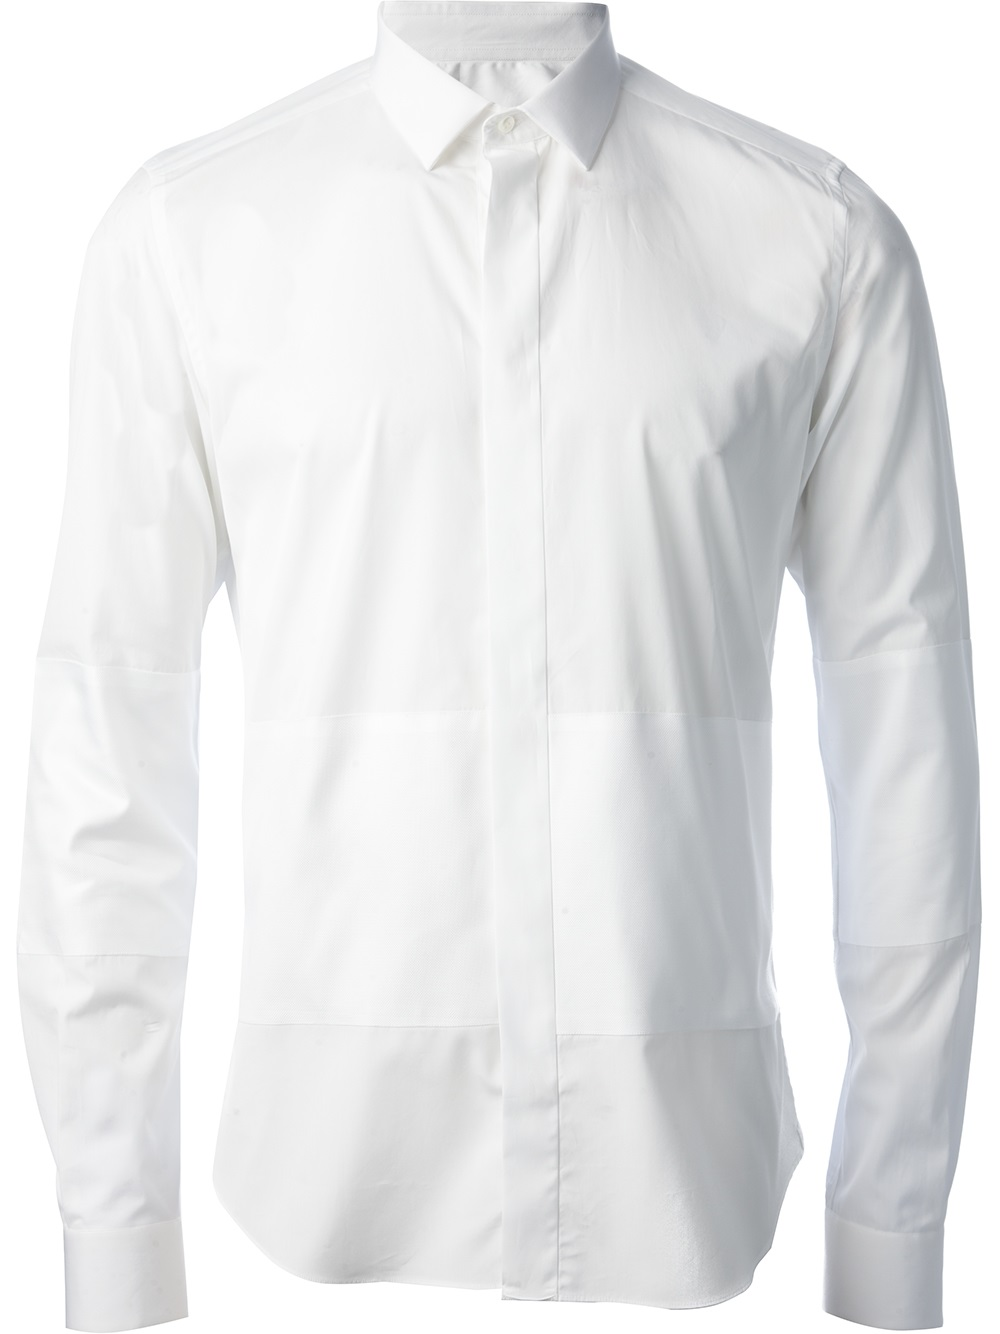 Lyst Valentino Collared Shirt In White For Men